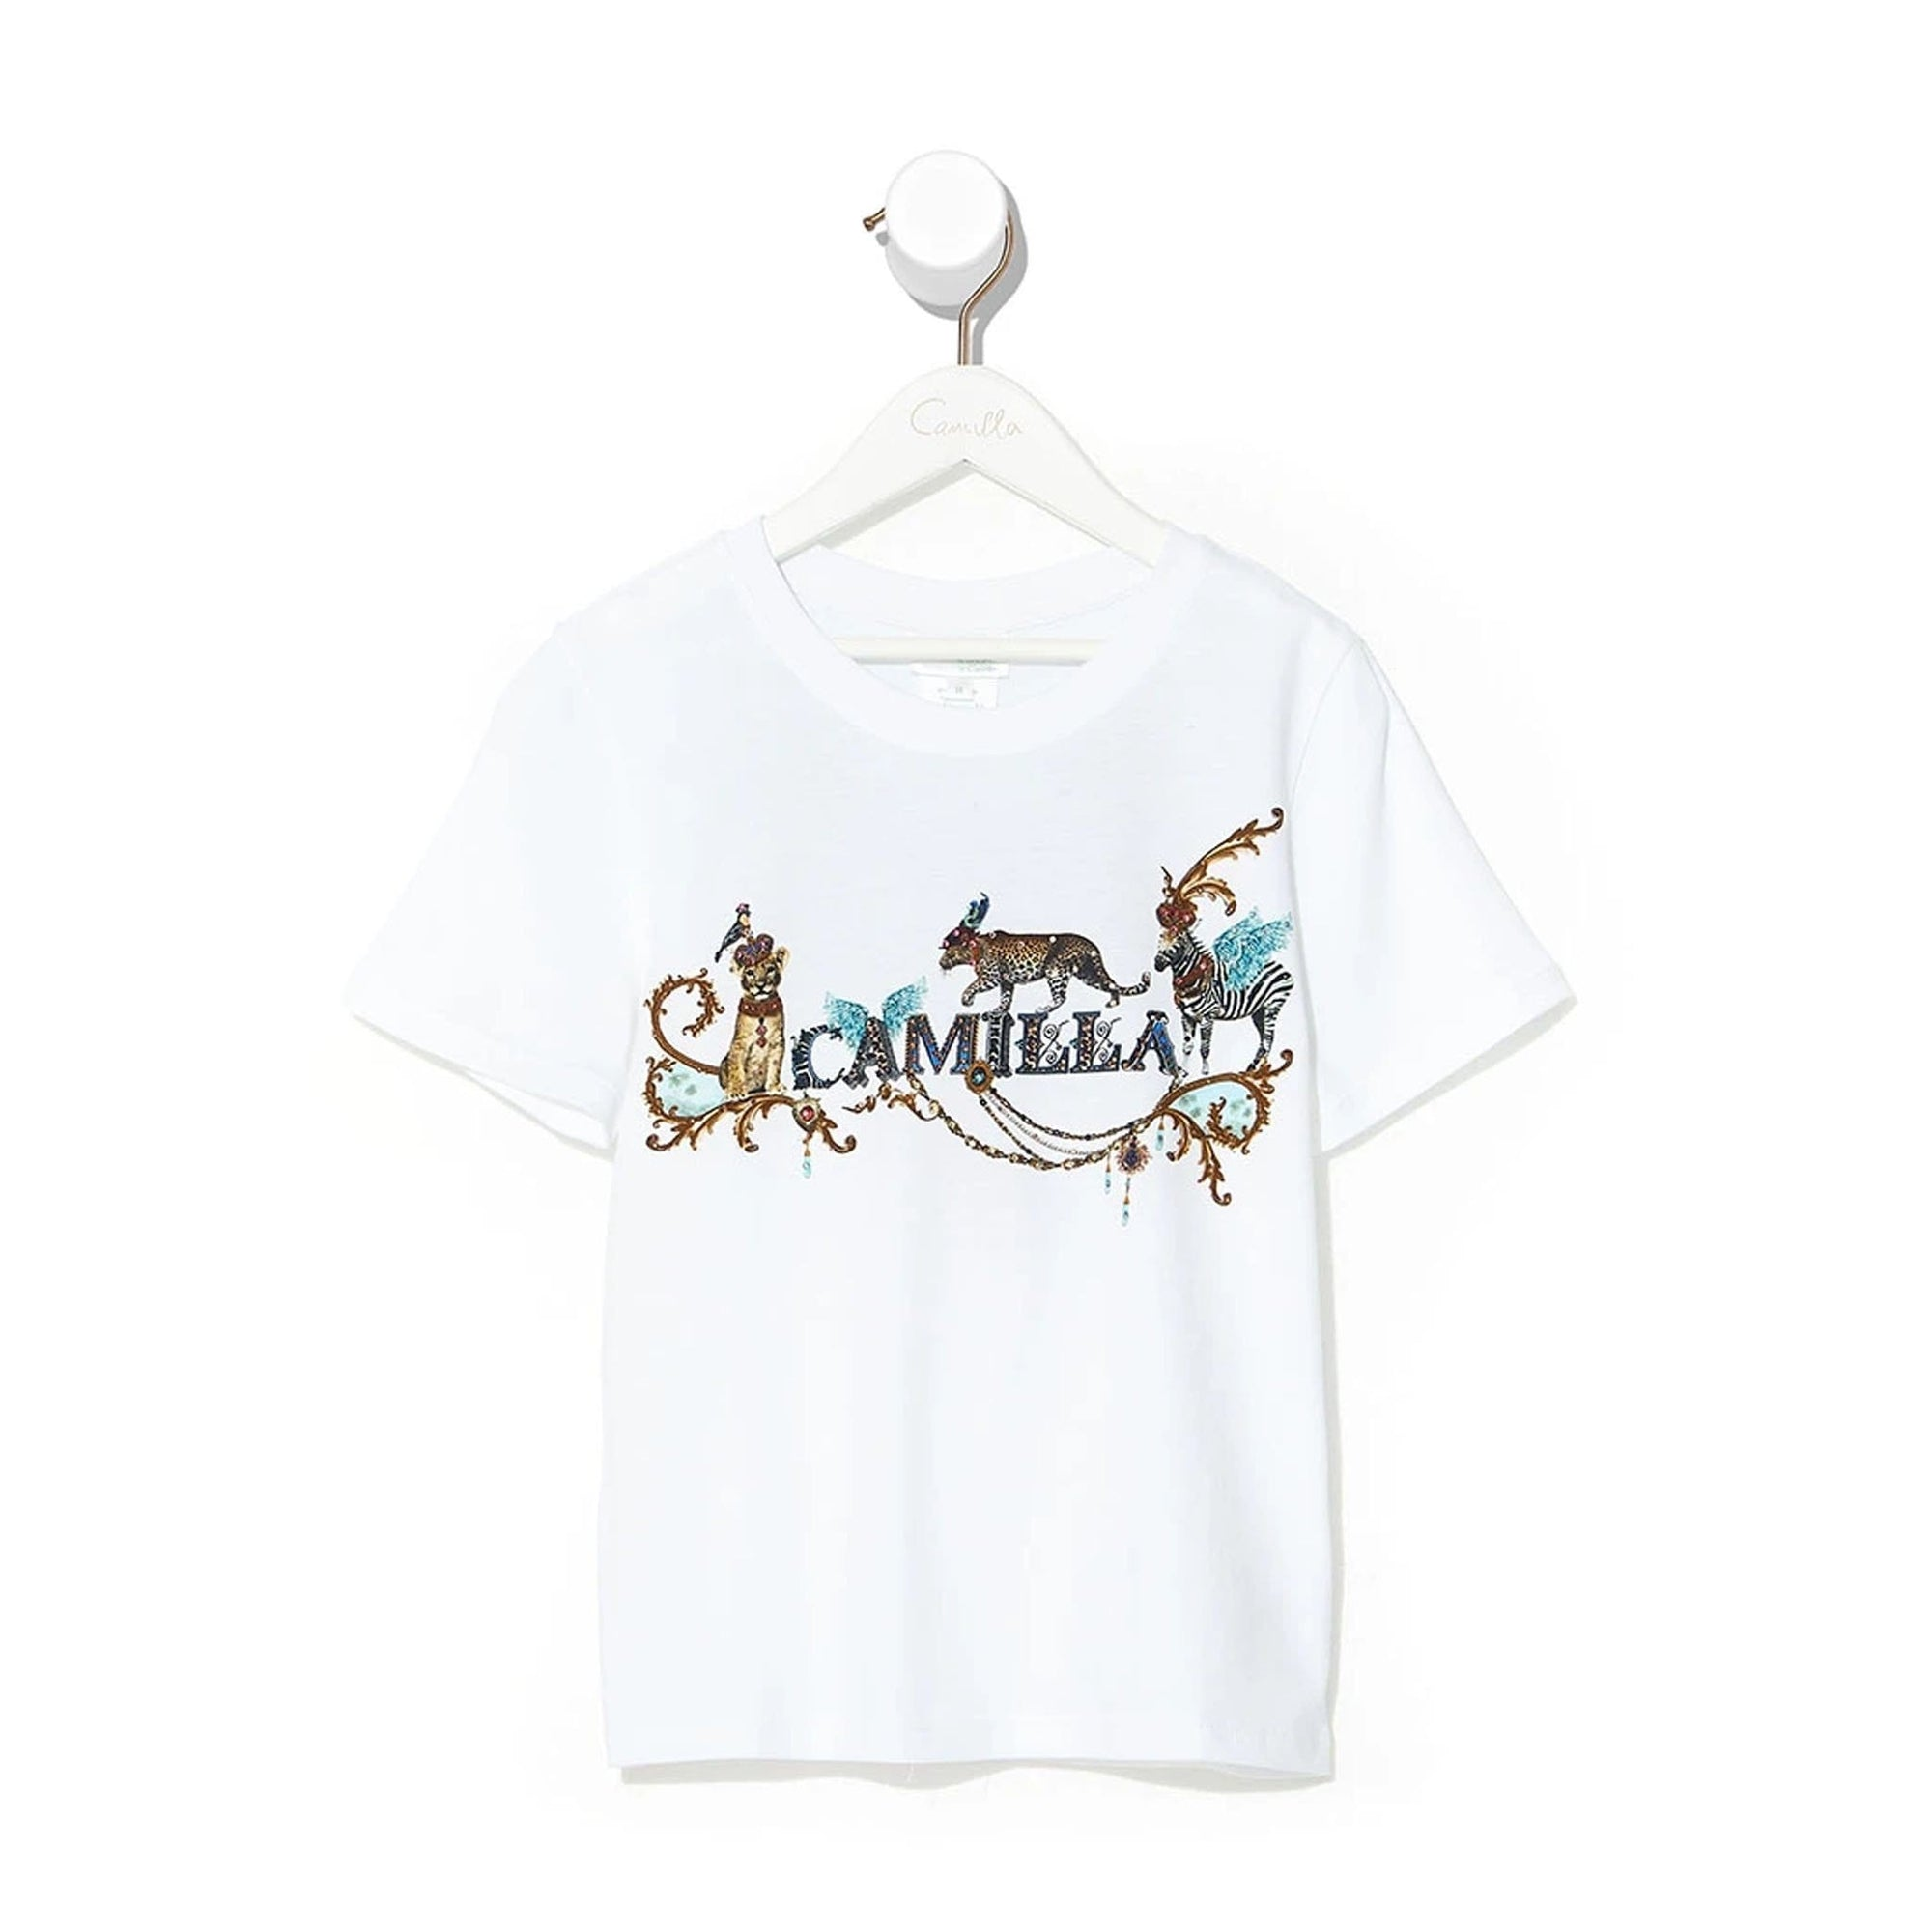 Camilla Animal Army Kids Short Sleeve T-Shirt